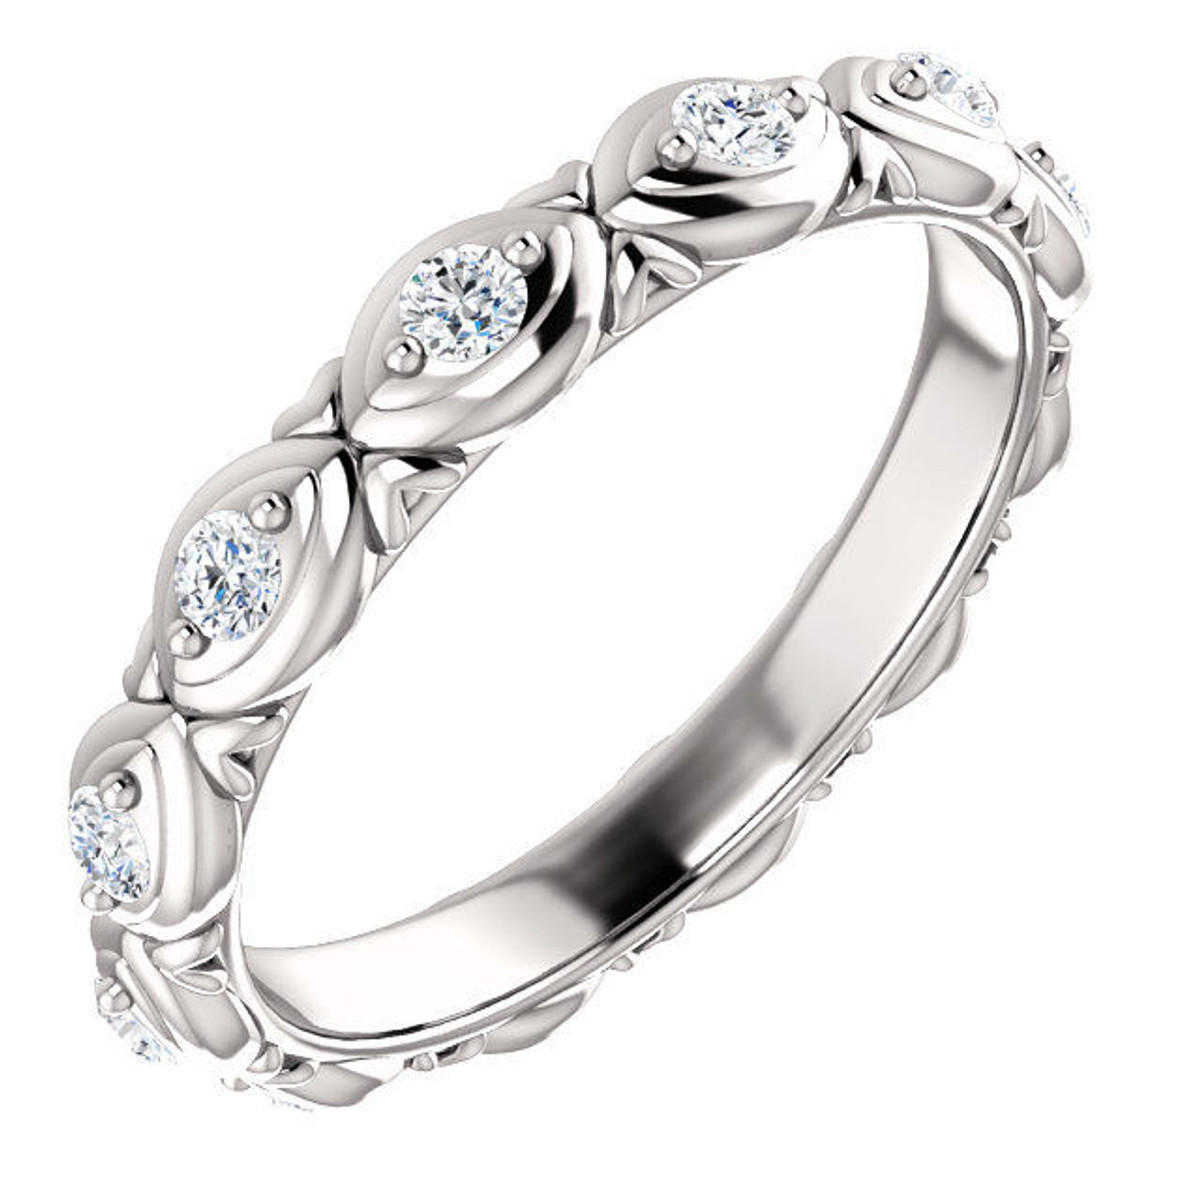 14Kt White Gold Designed Diamond Eternity Ring